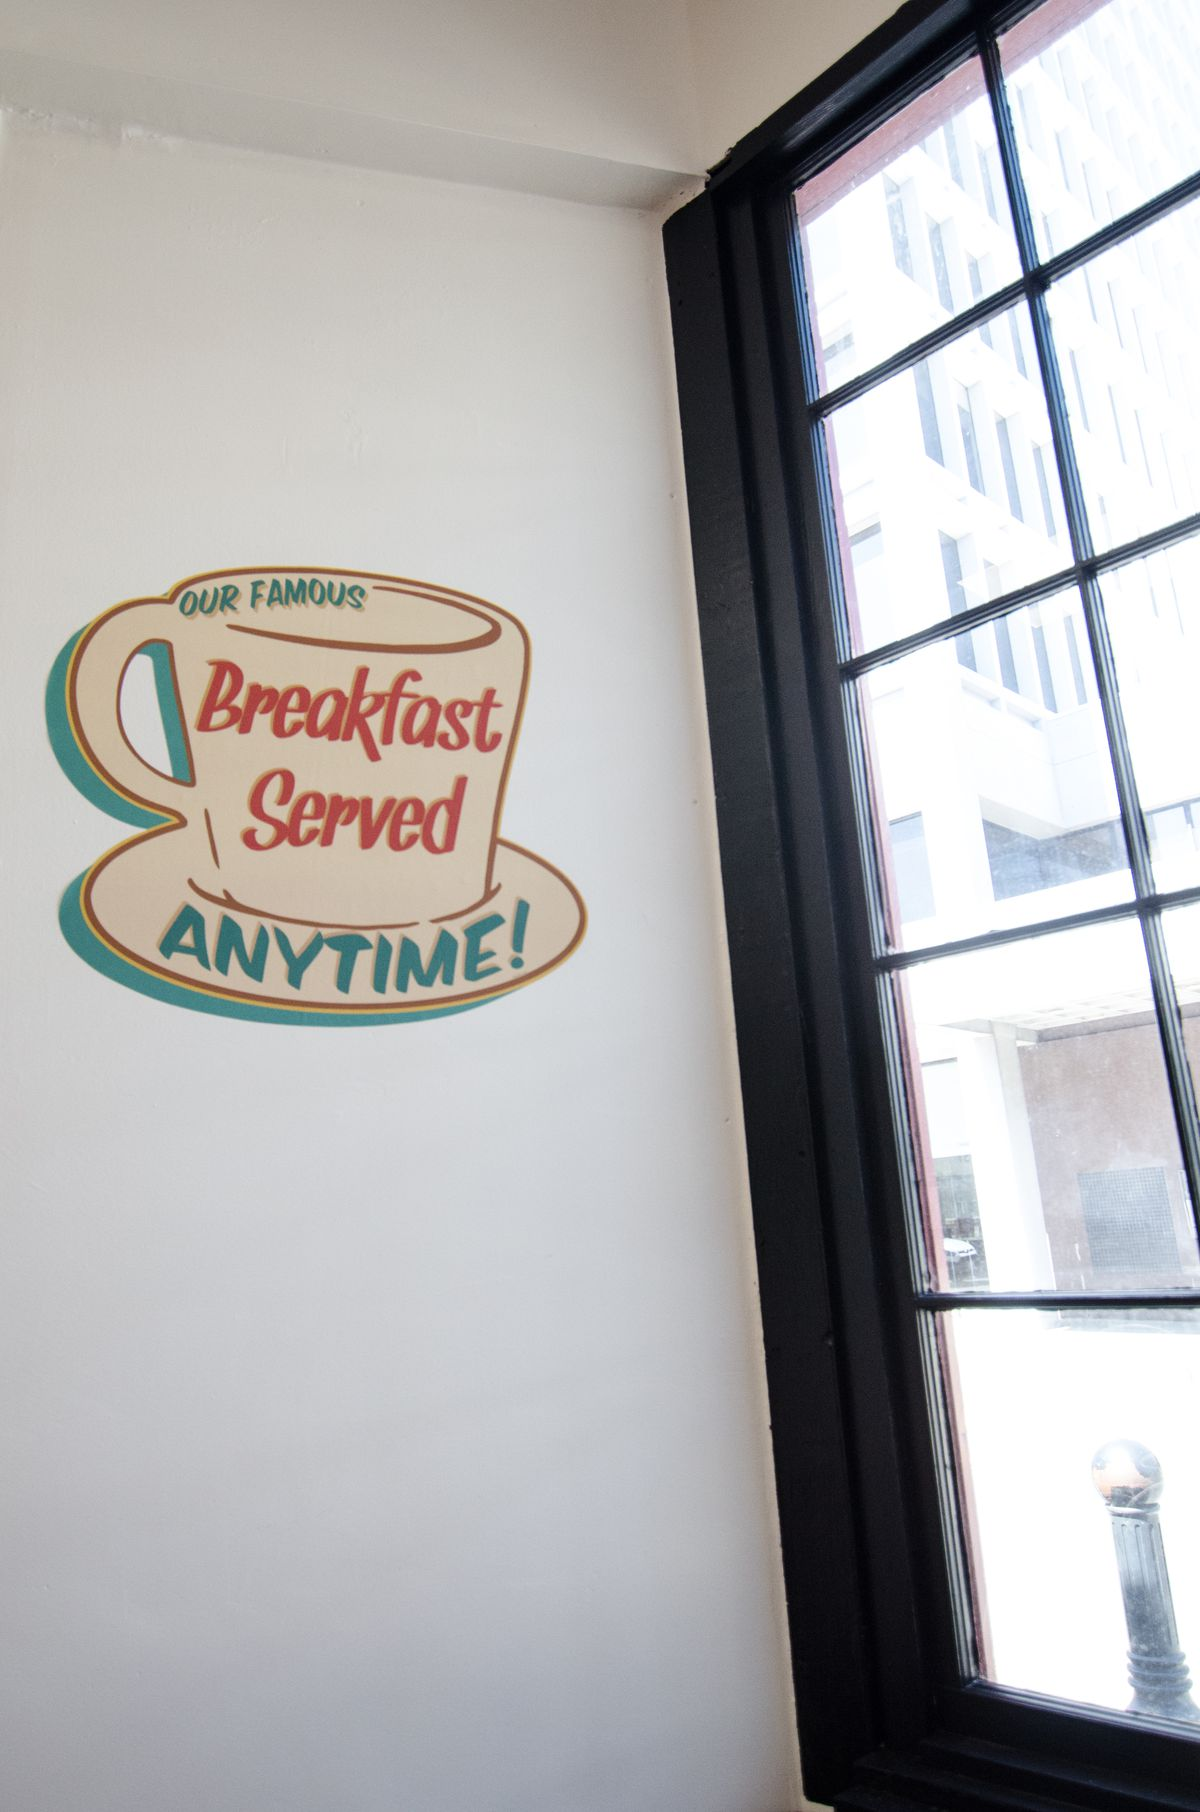 """A coffee cup-shaped vintage sign says """"Our famous breakfast served anytime!"""" and hangs on a white wall near a window"""